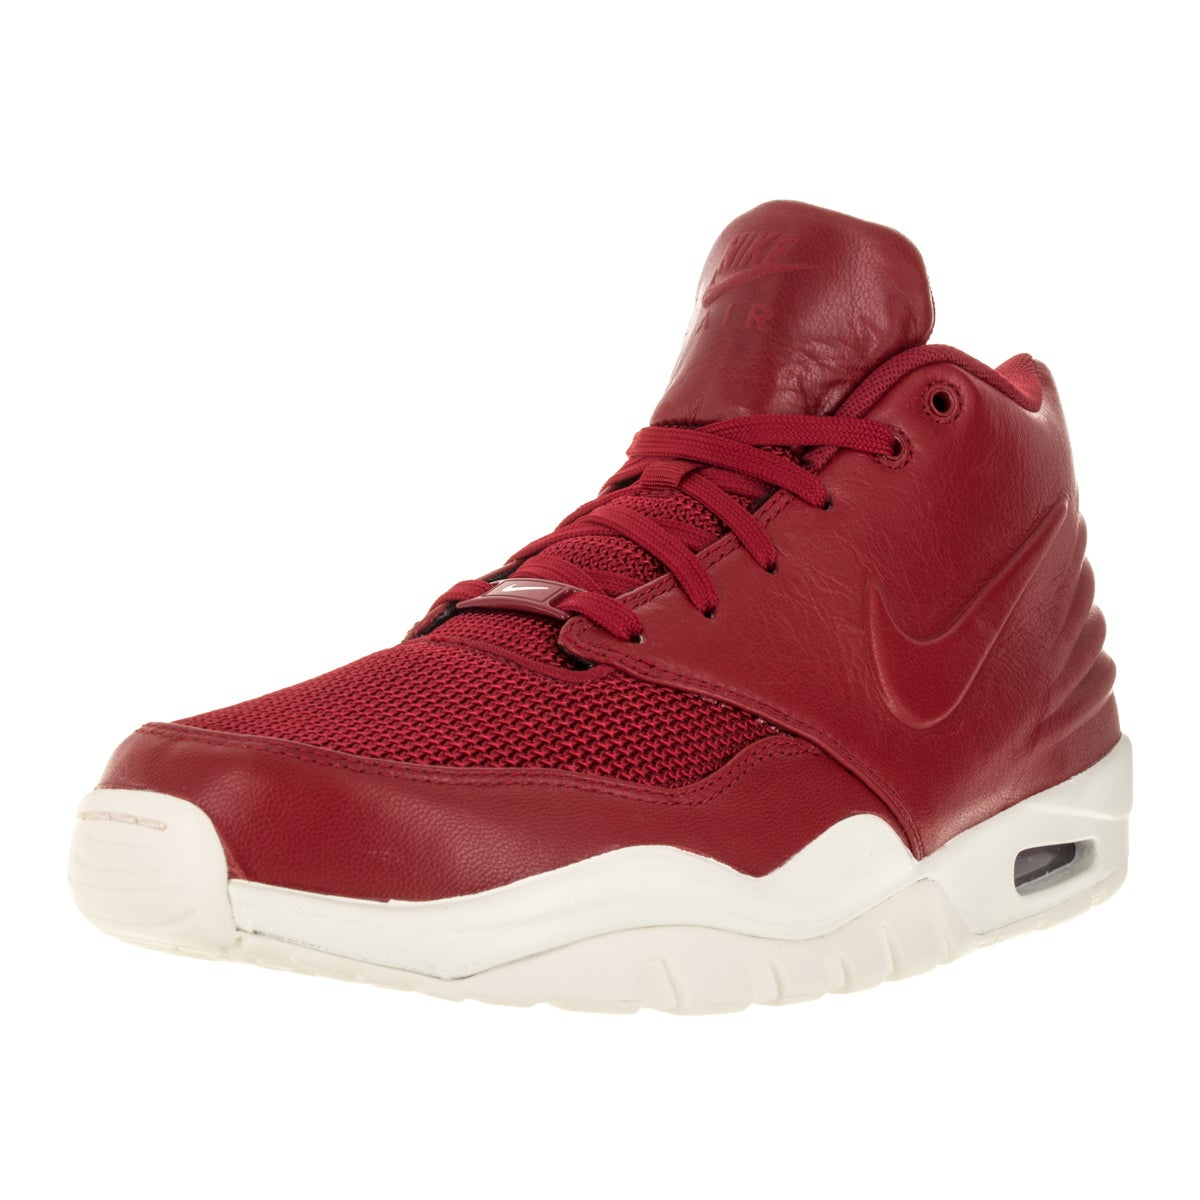 Nike Men's Air Entertrainer Gym Red/Gym Red/Sail Training...